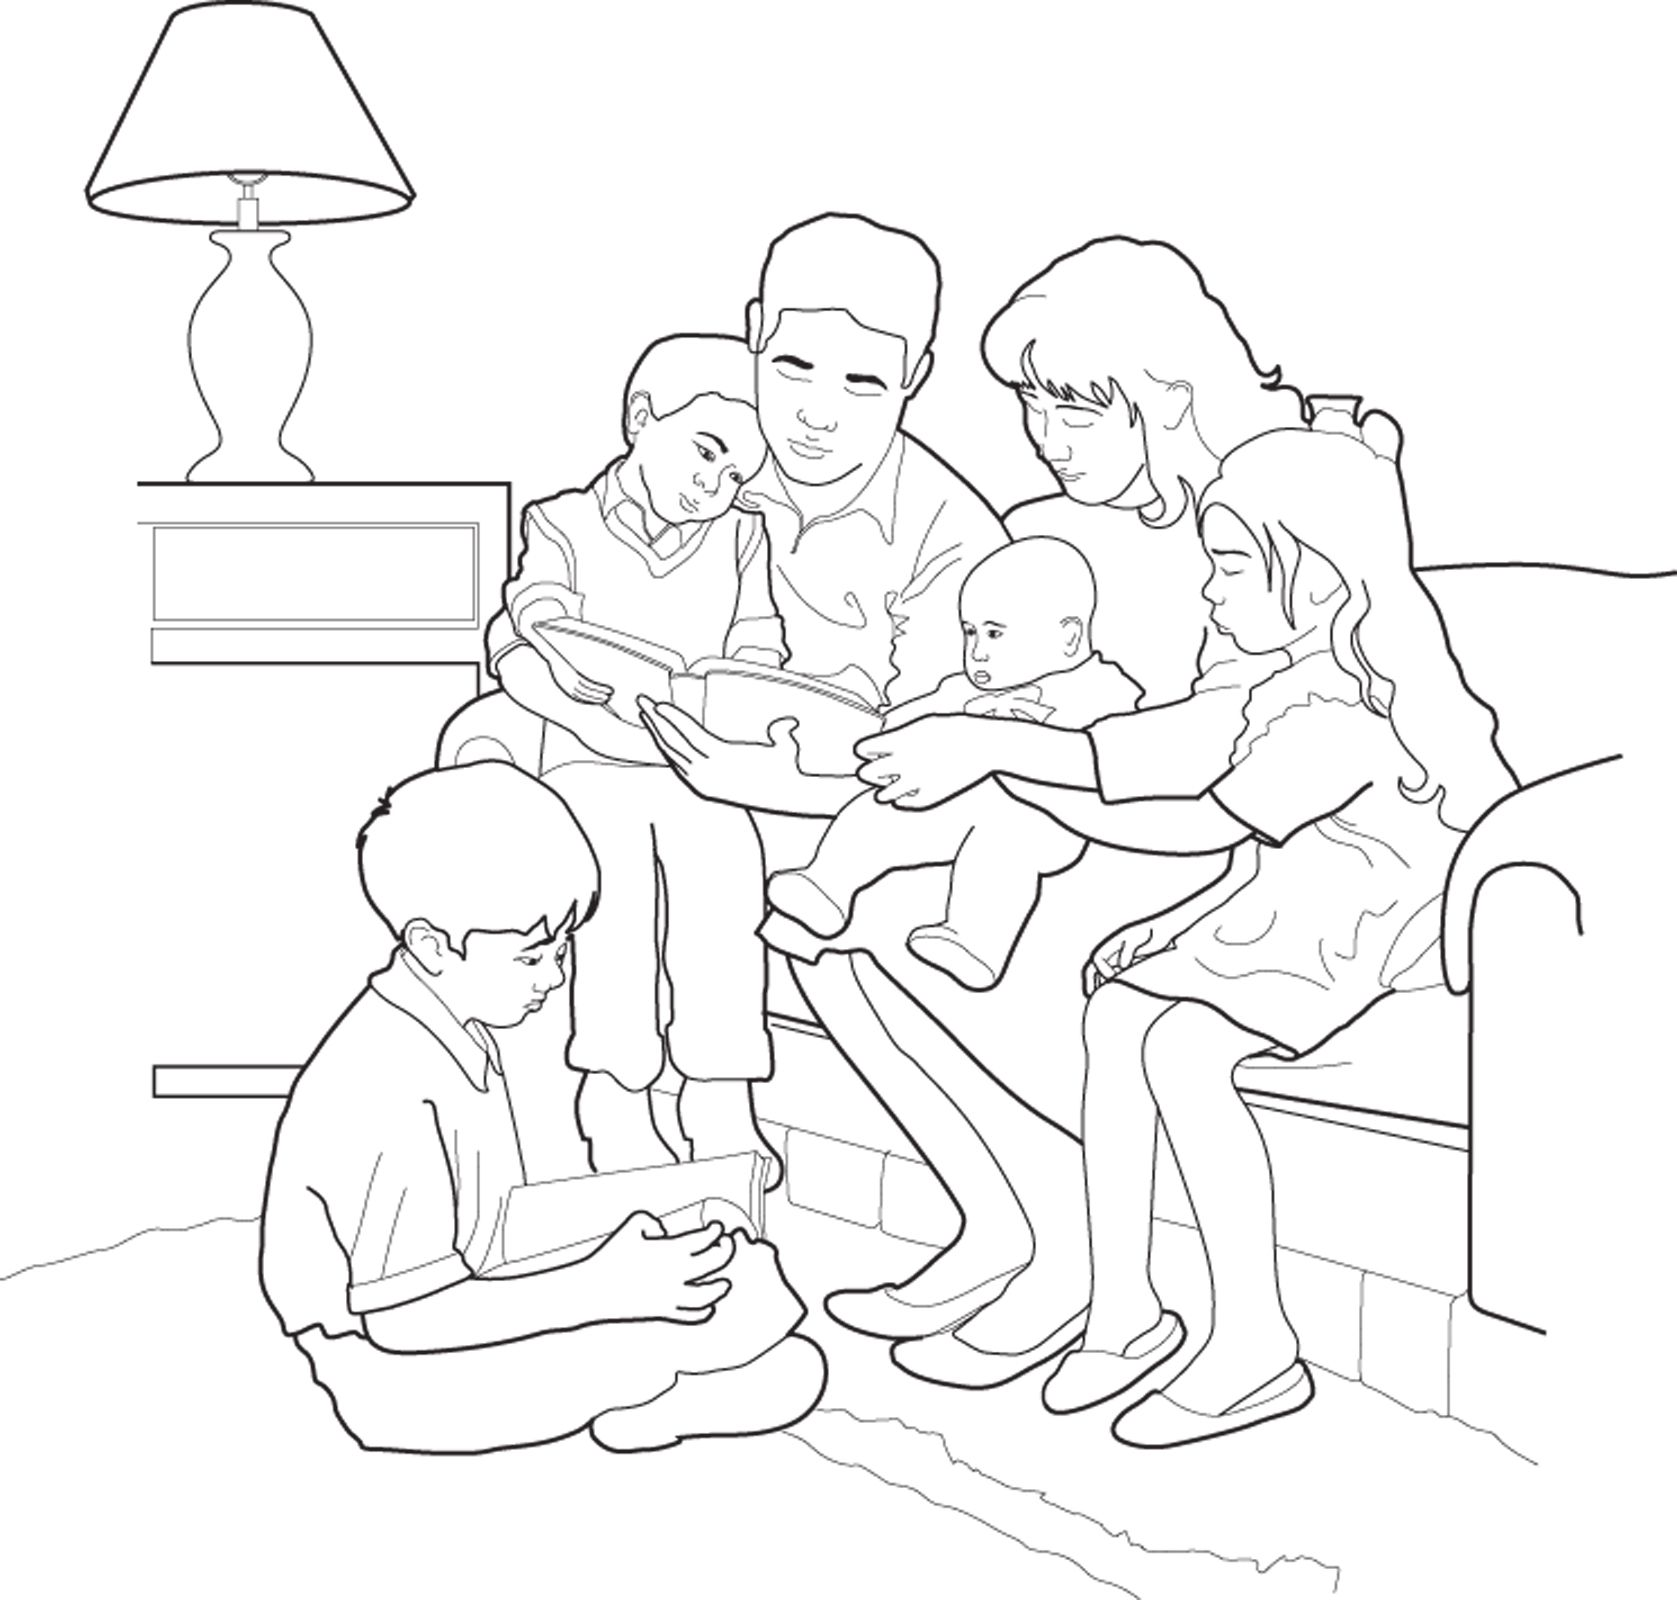 A Family Reading Together Childrens Coloring Page From